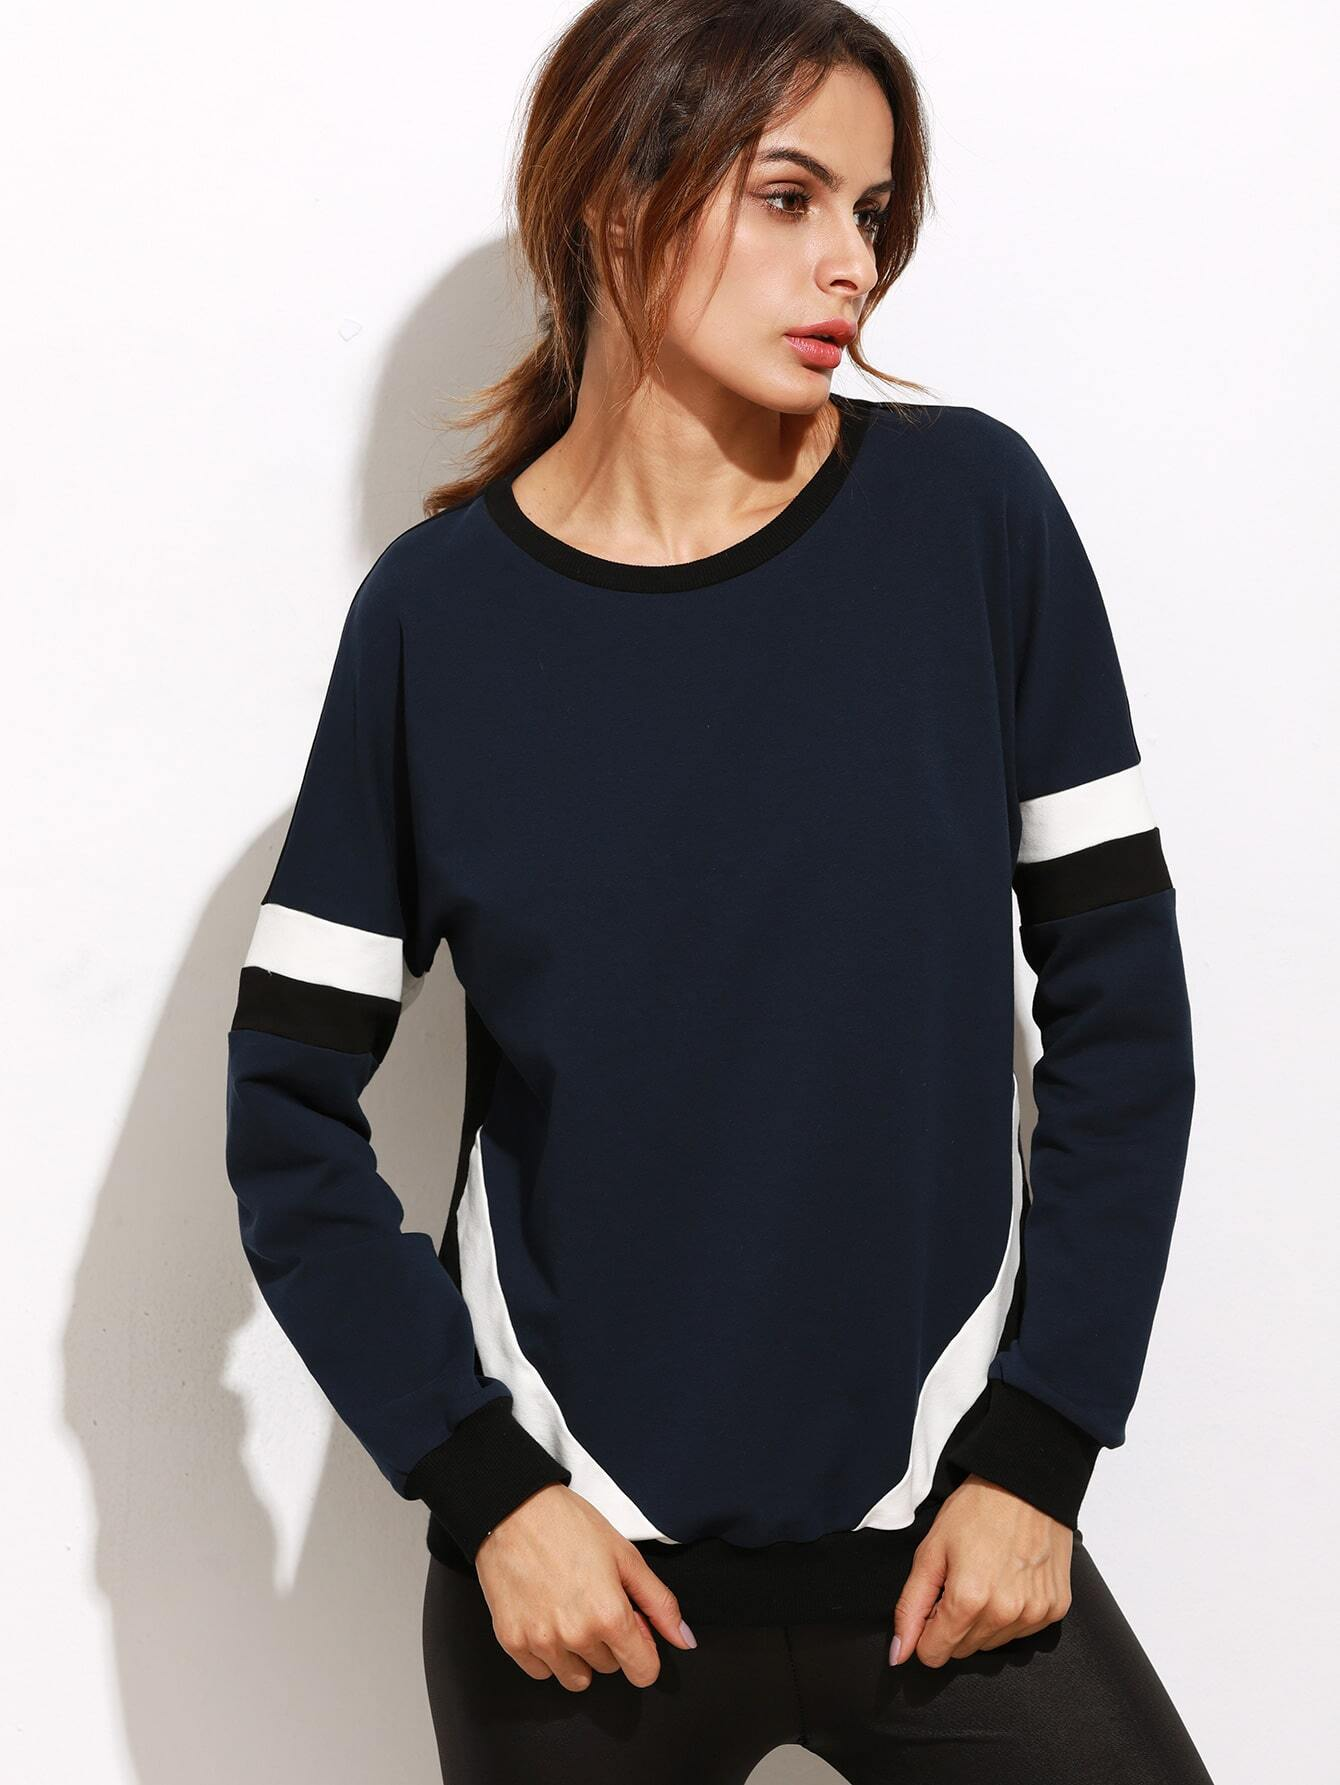 Color Block Ribbed Trim Sweatshirt sweatshirt160929703